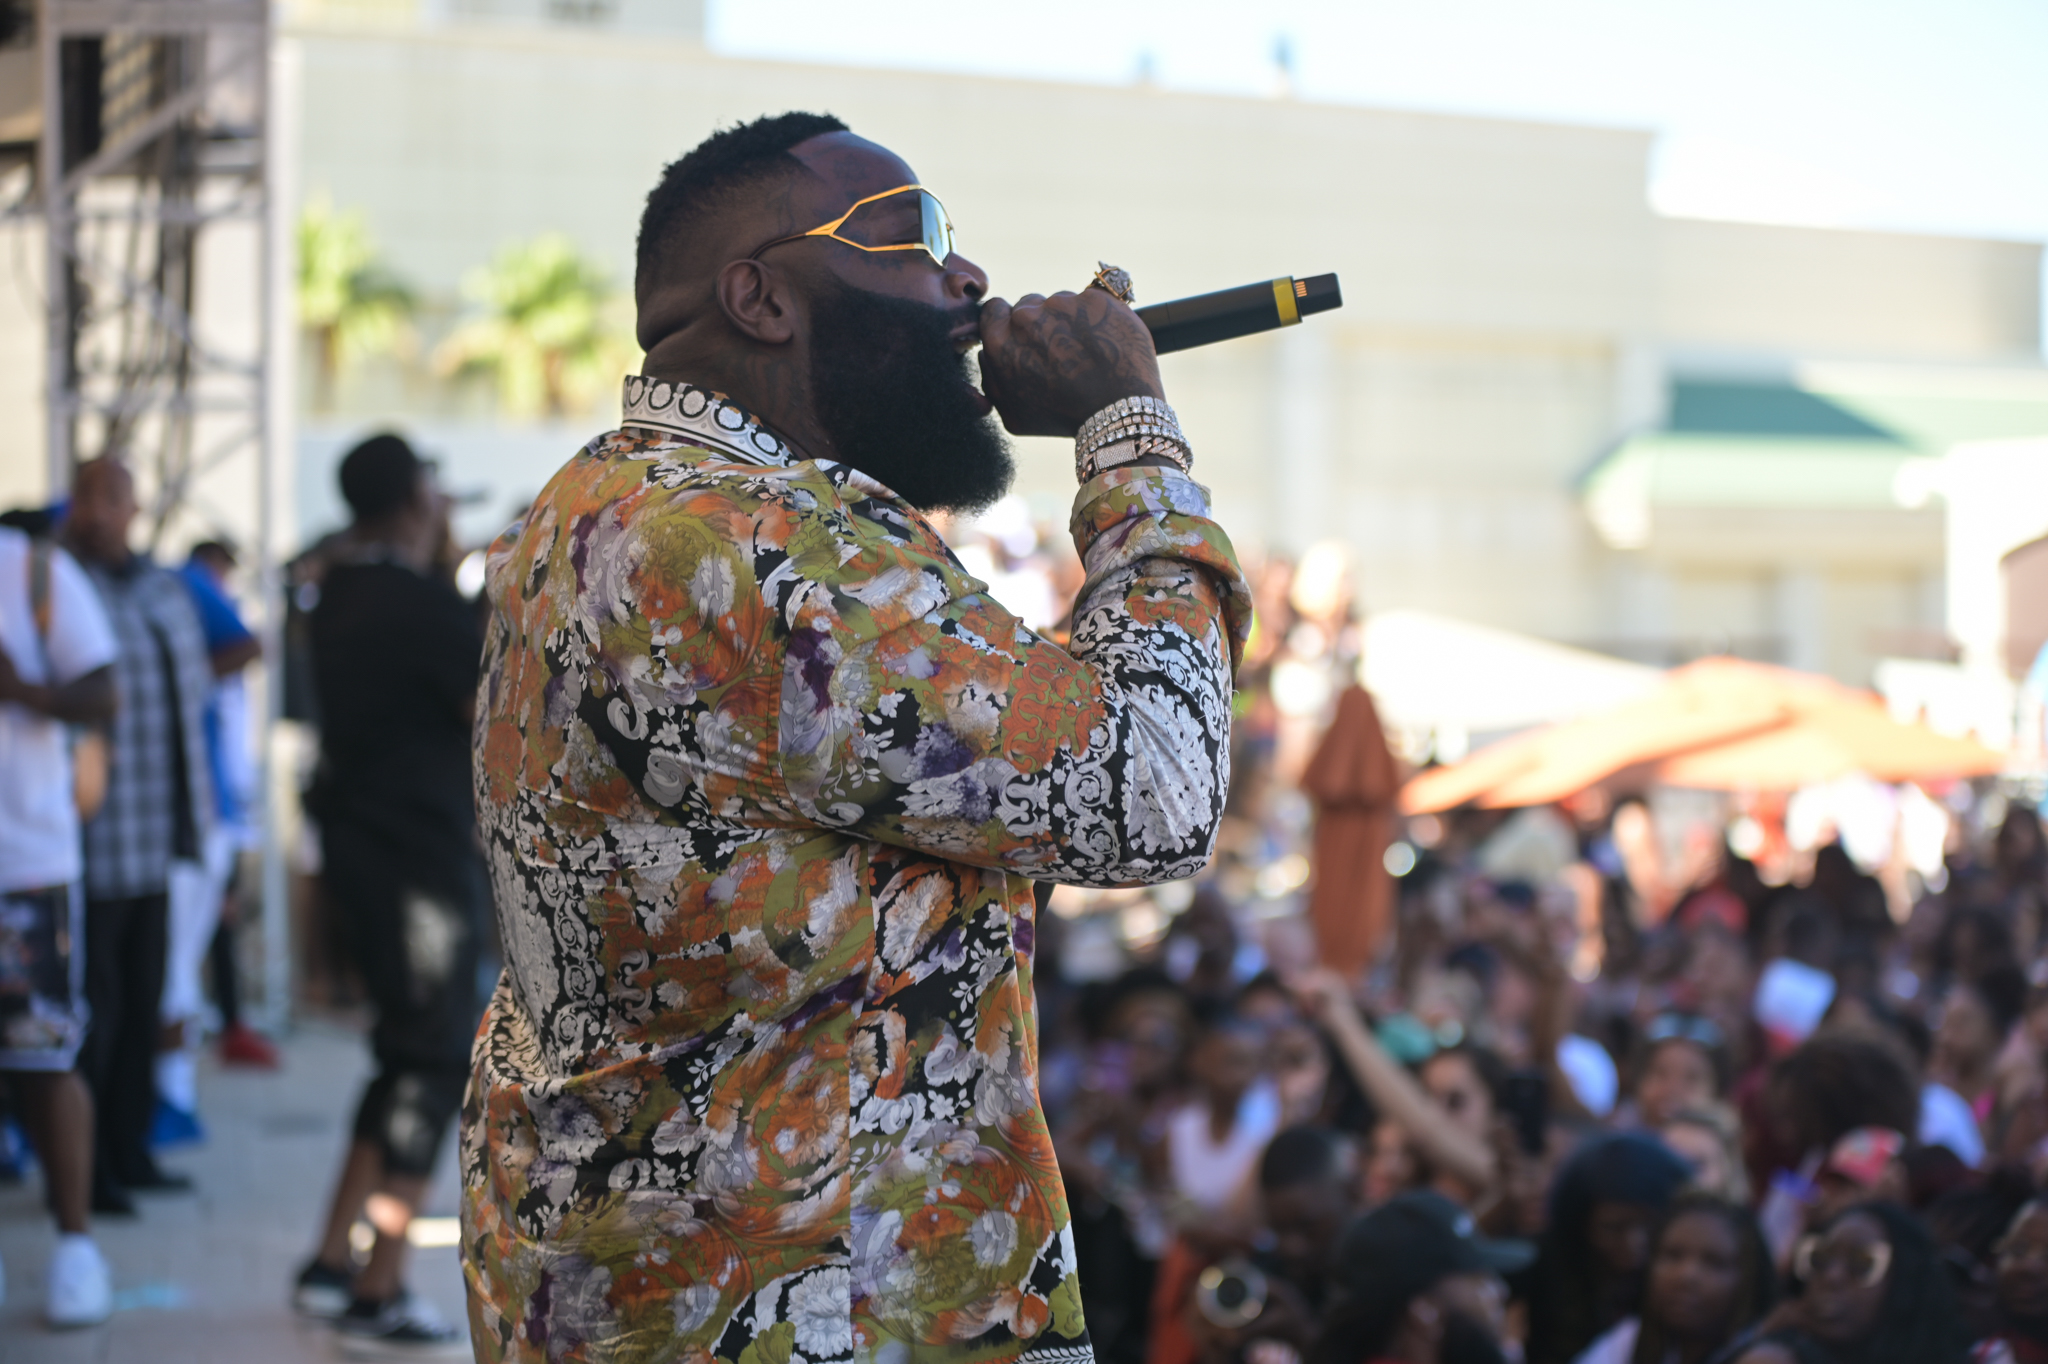 Daylight Beach Club Las Vegas 2019, Daylight Beach Club Rick Ross, Entertainment News 2019, Las Vegas, Las Vegas 2019, Las Vegas Entertainment Scene 2019, Las Vegas Entertainment Shows 2019, Las Vegas News 2019, News 2019, Rick Ross Las Vegas 2019, Rick Ross Mandalay Bay, Rick Ross Mandalay Bay Las Vegas 2019